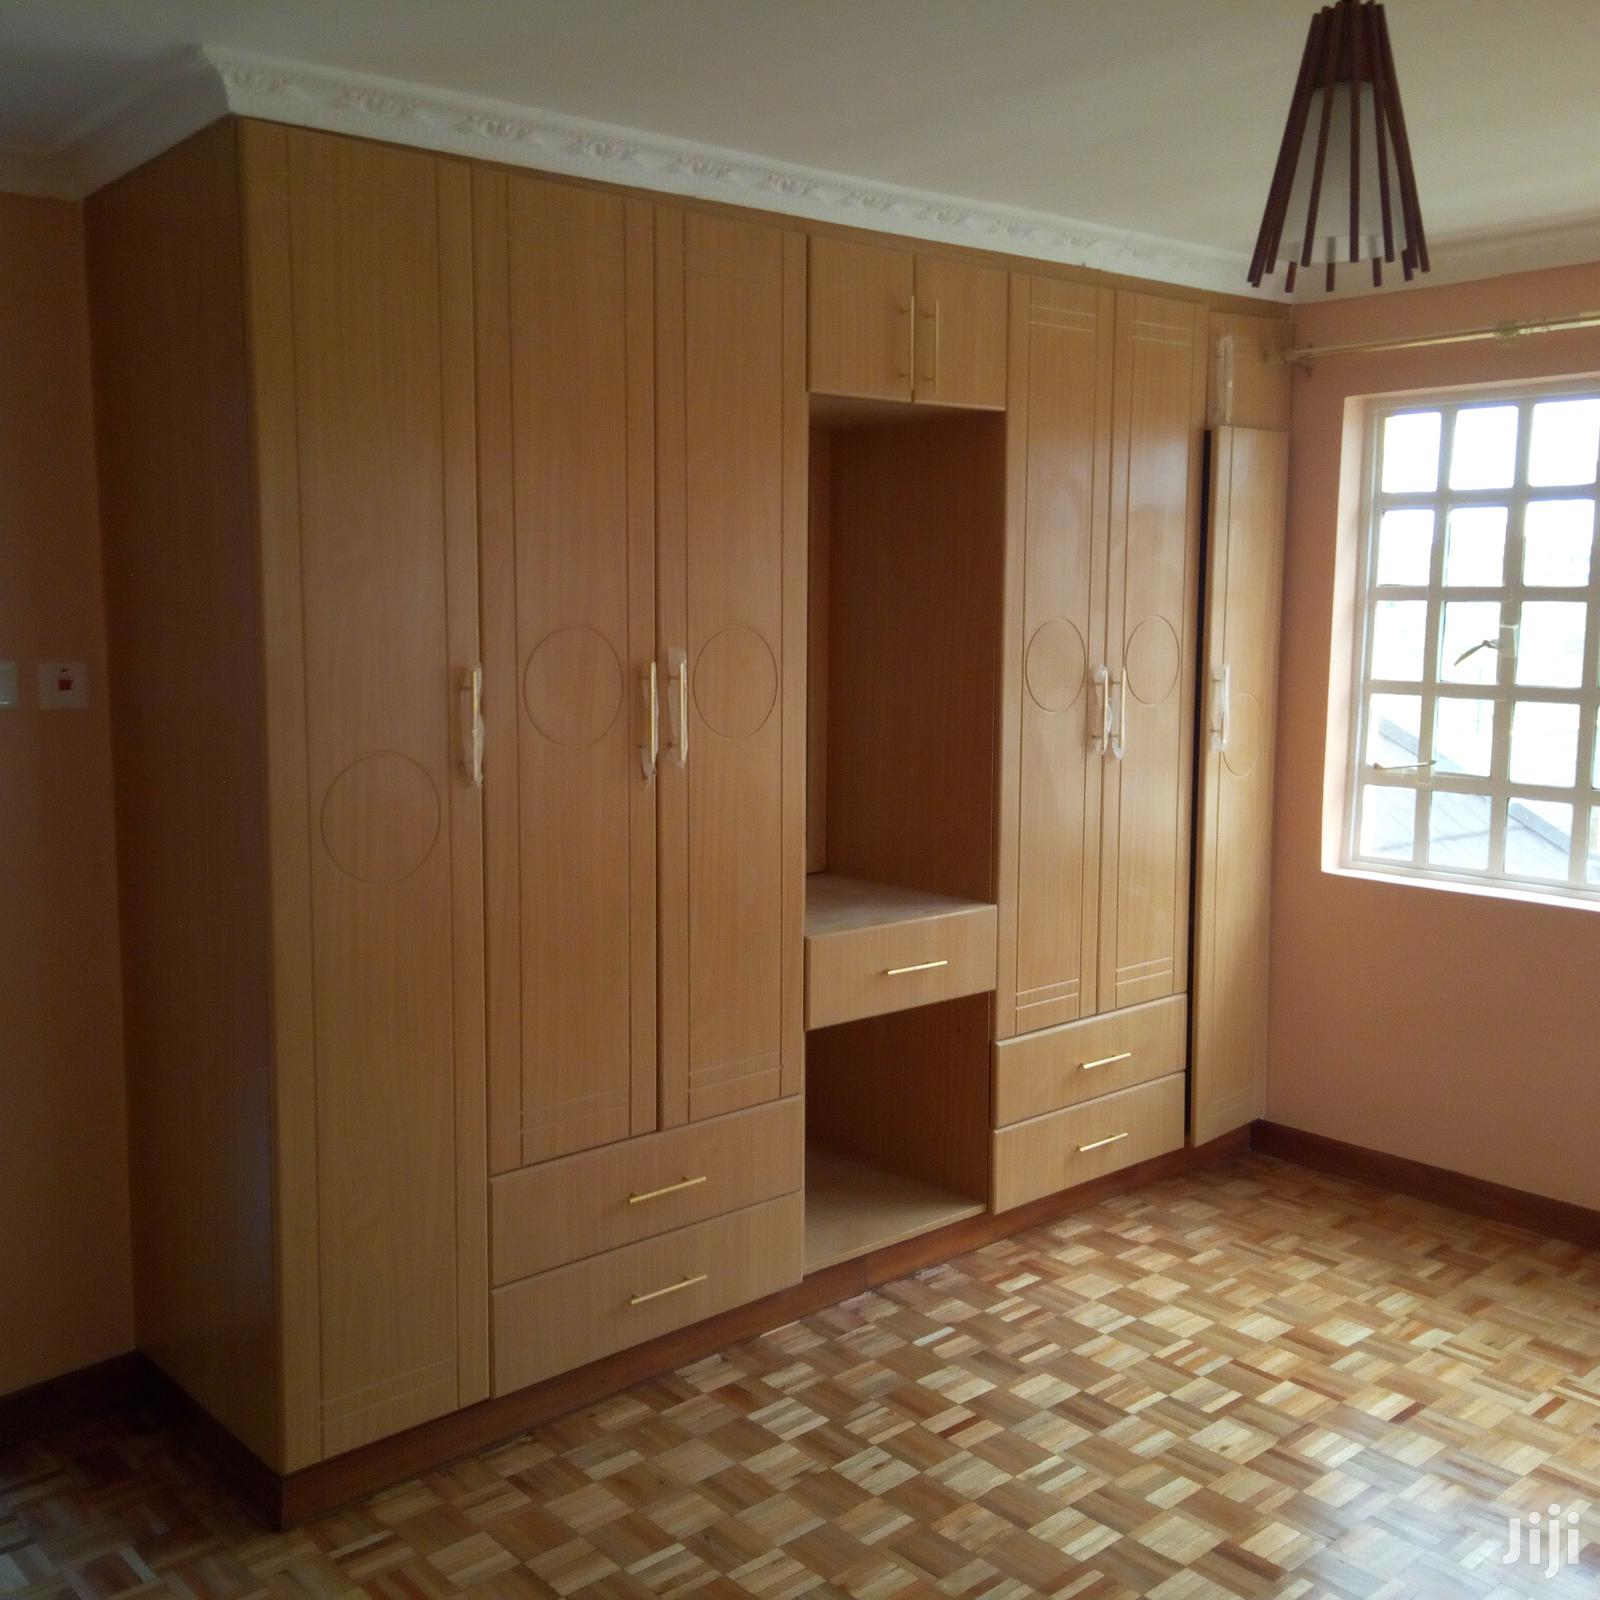 Sarah Gables: 5 Bedroom Maisonettes In Yukos, Kitengela | Houses & Apartments For Sale for sale in Kitengela, Kajiado, Kenya